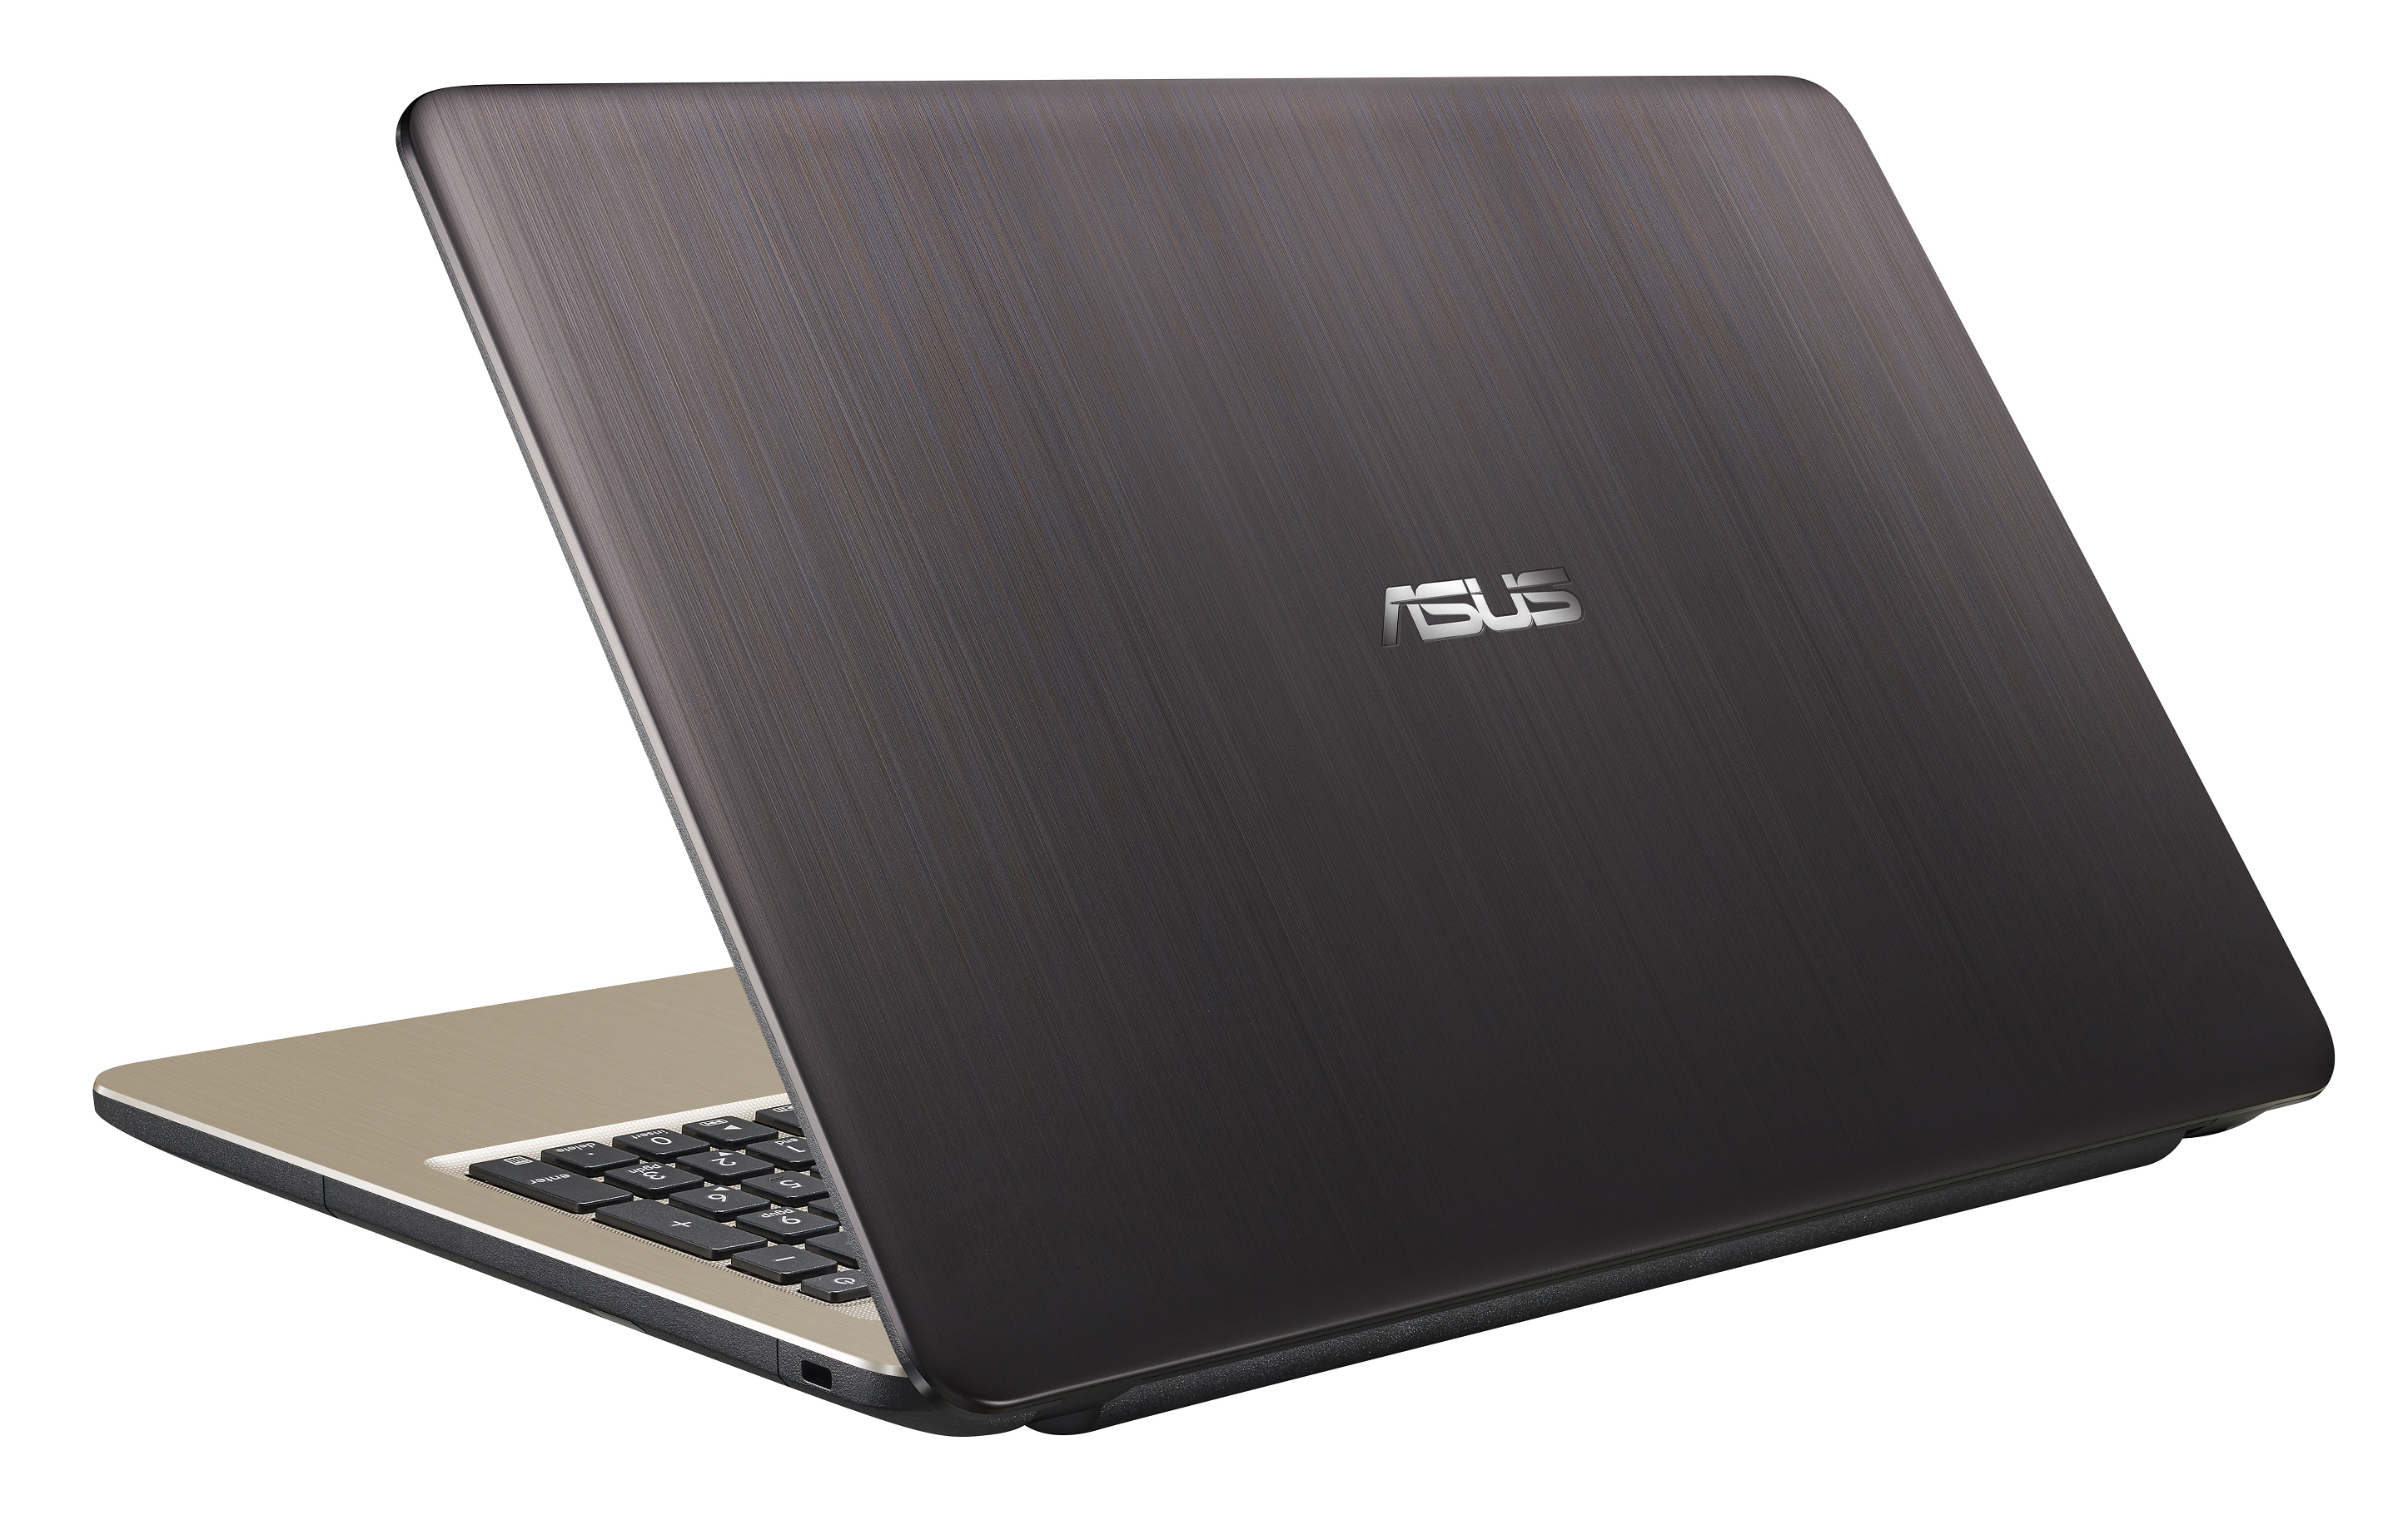 Asus F540sa Xx087t Notebook Review Notebookcheck Net Reviews